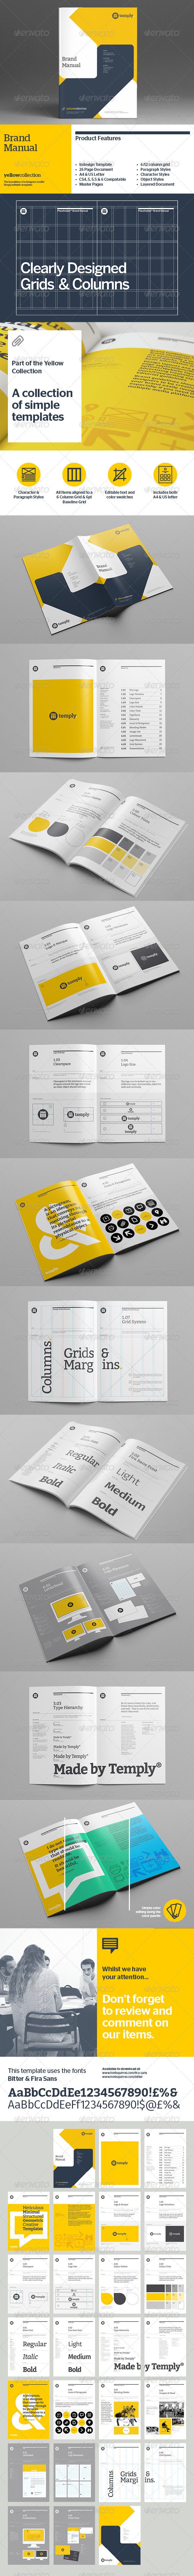 GraphicRiver Brand Manual Template 8536178